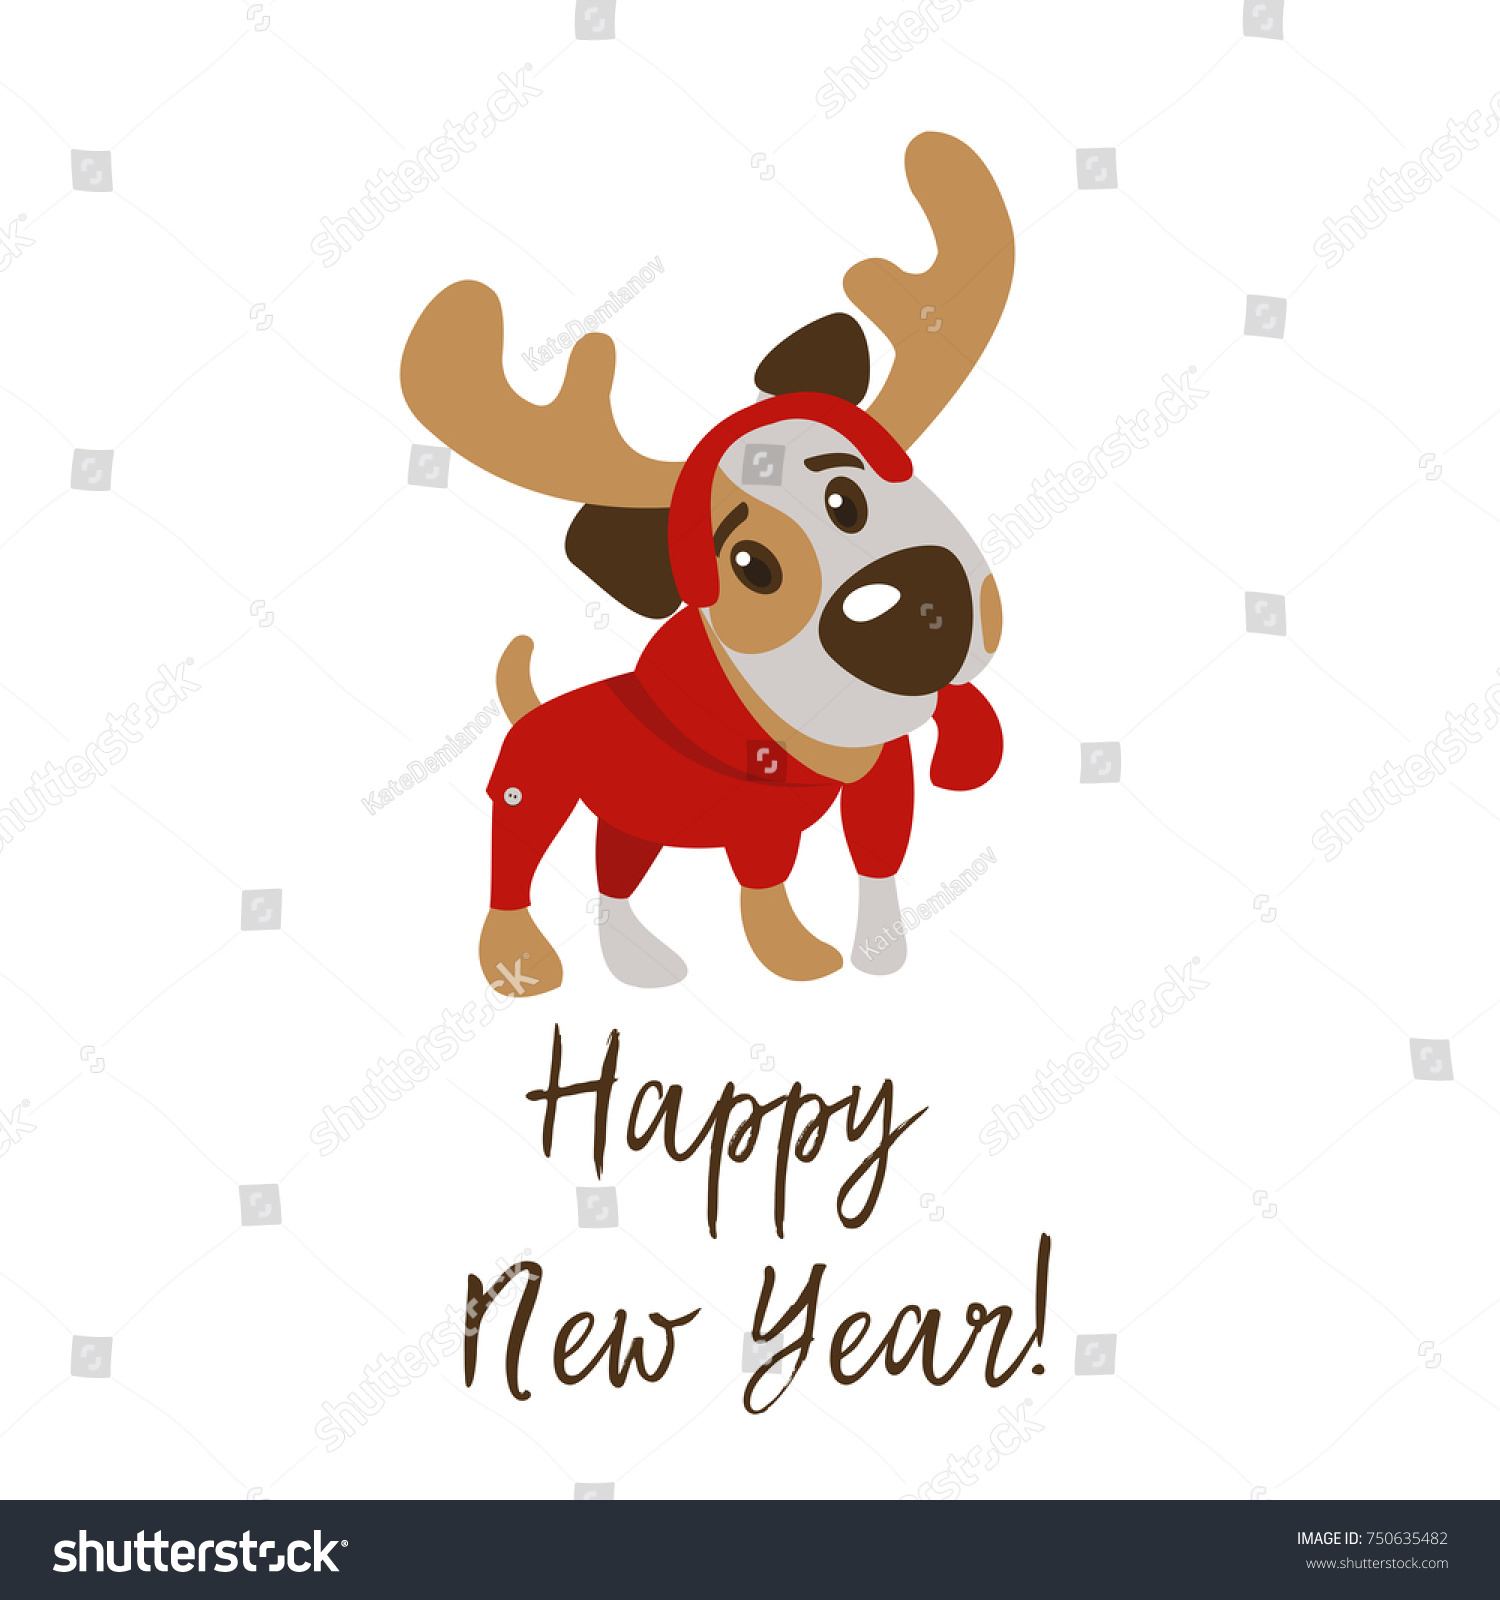 Happy New Year Merry Christmas Greeting Stock Vector (Royalty Free ...